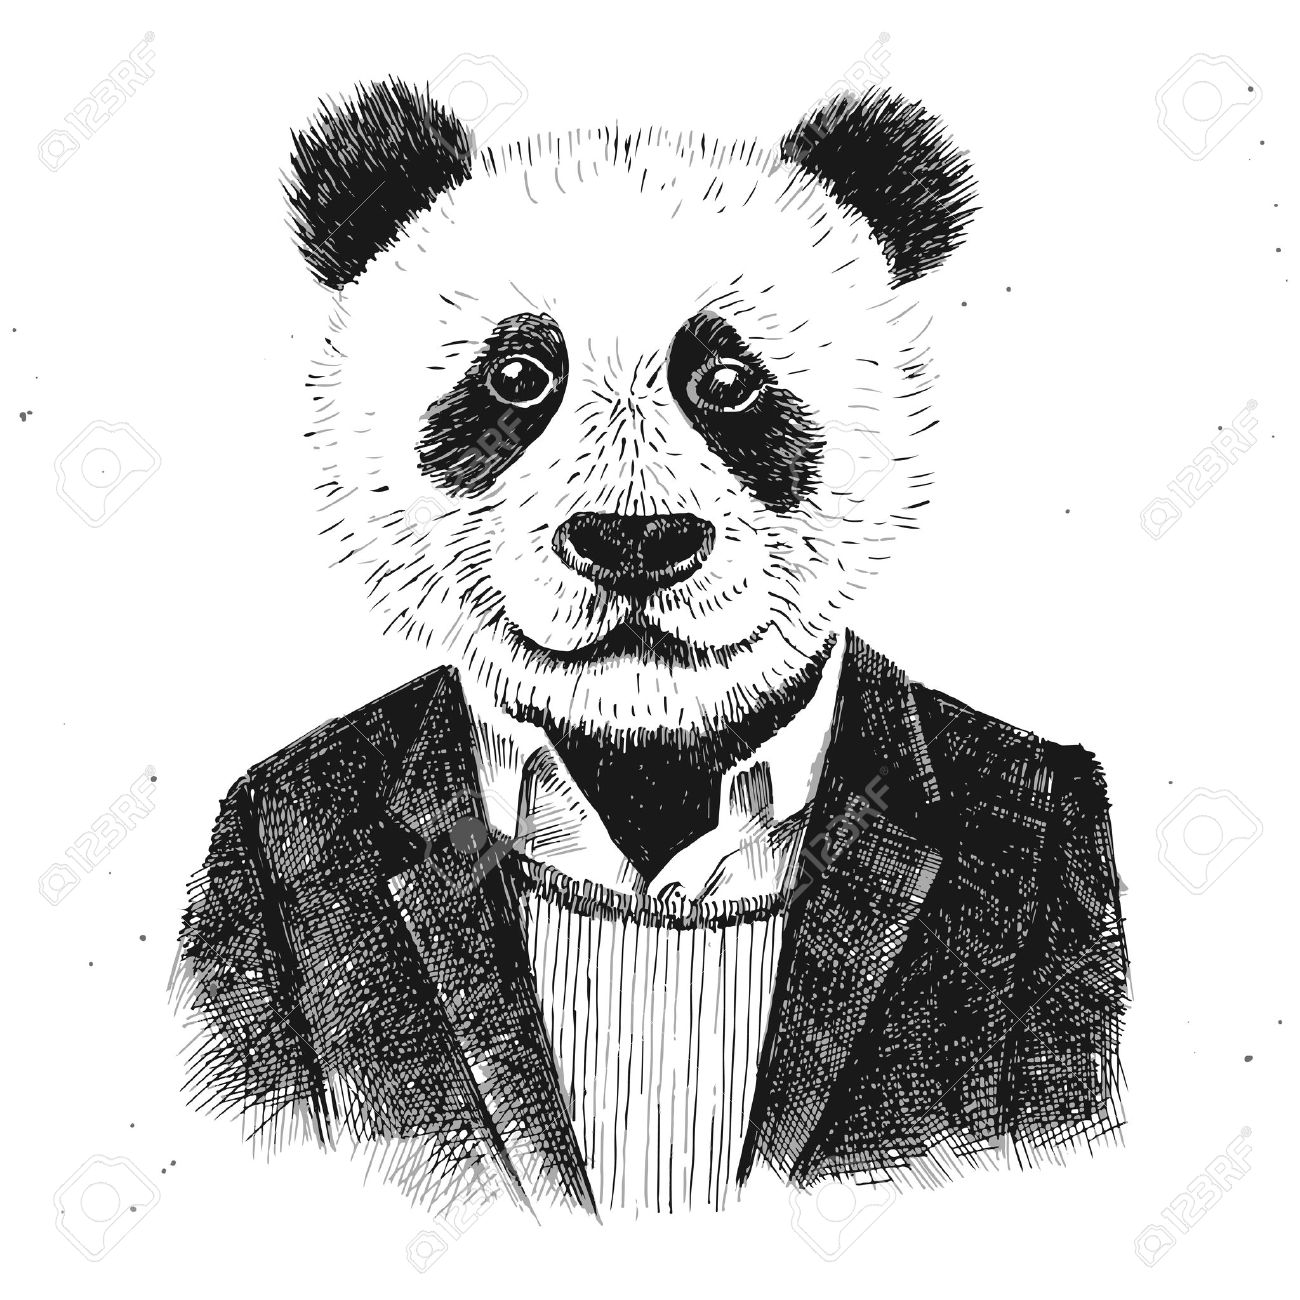 dressed up hipster panda on white background - 44206079